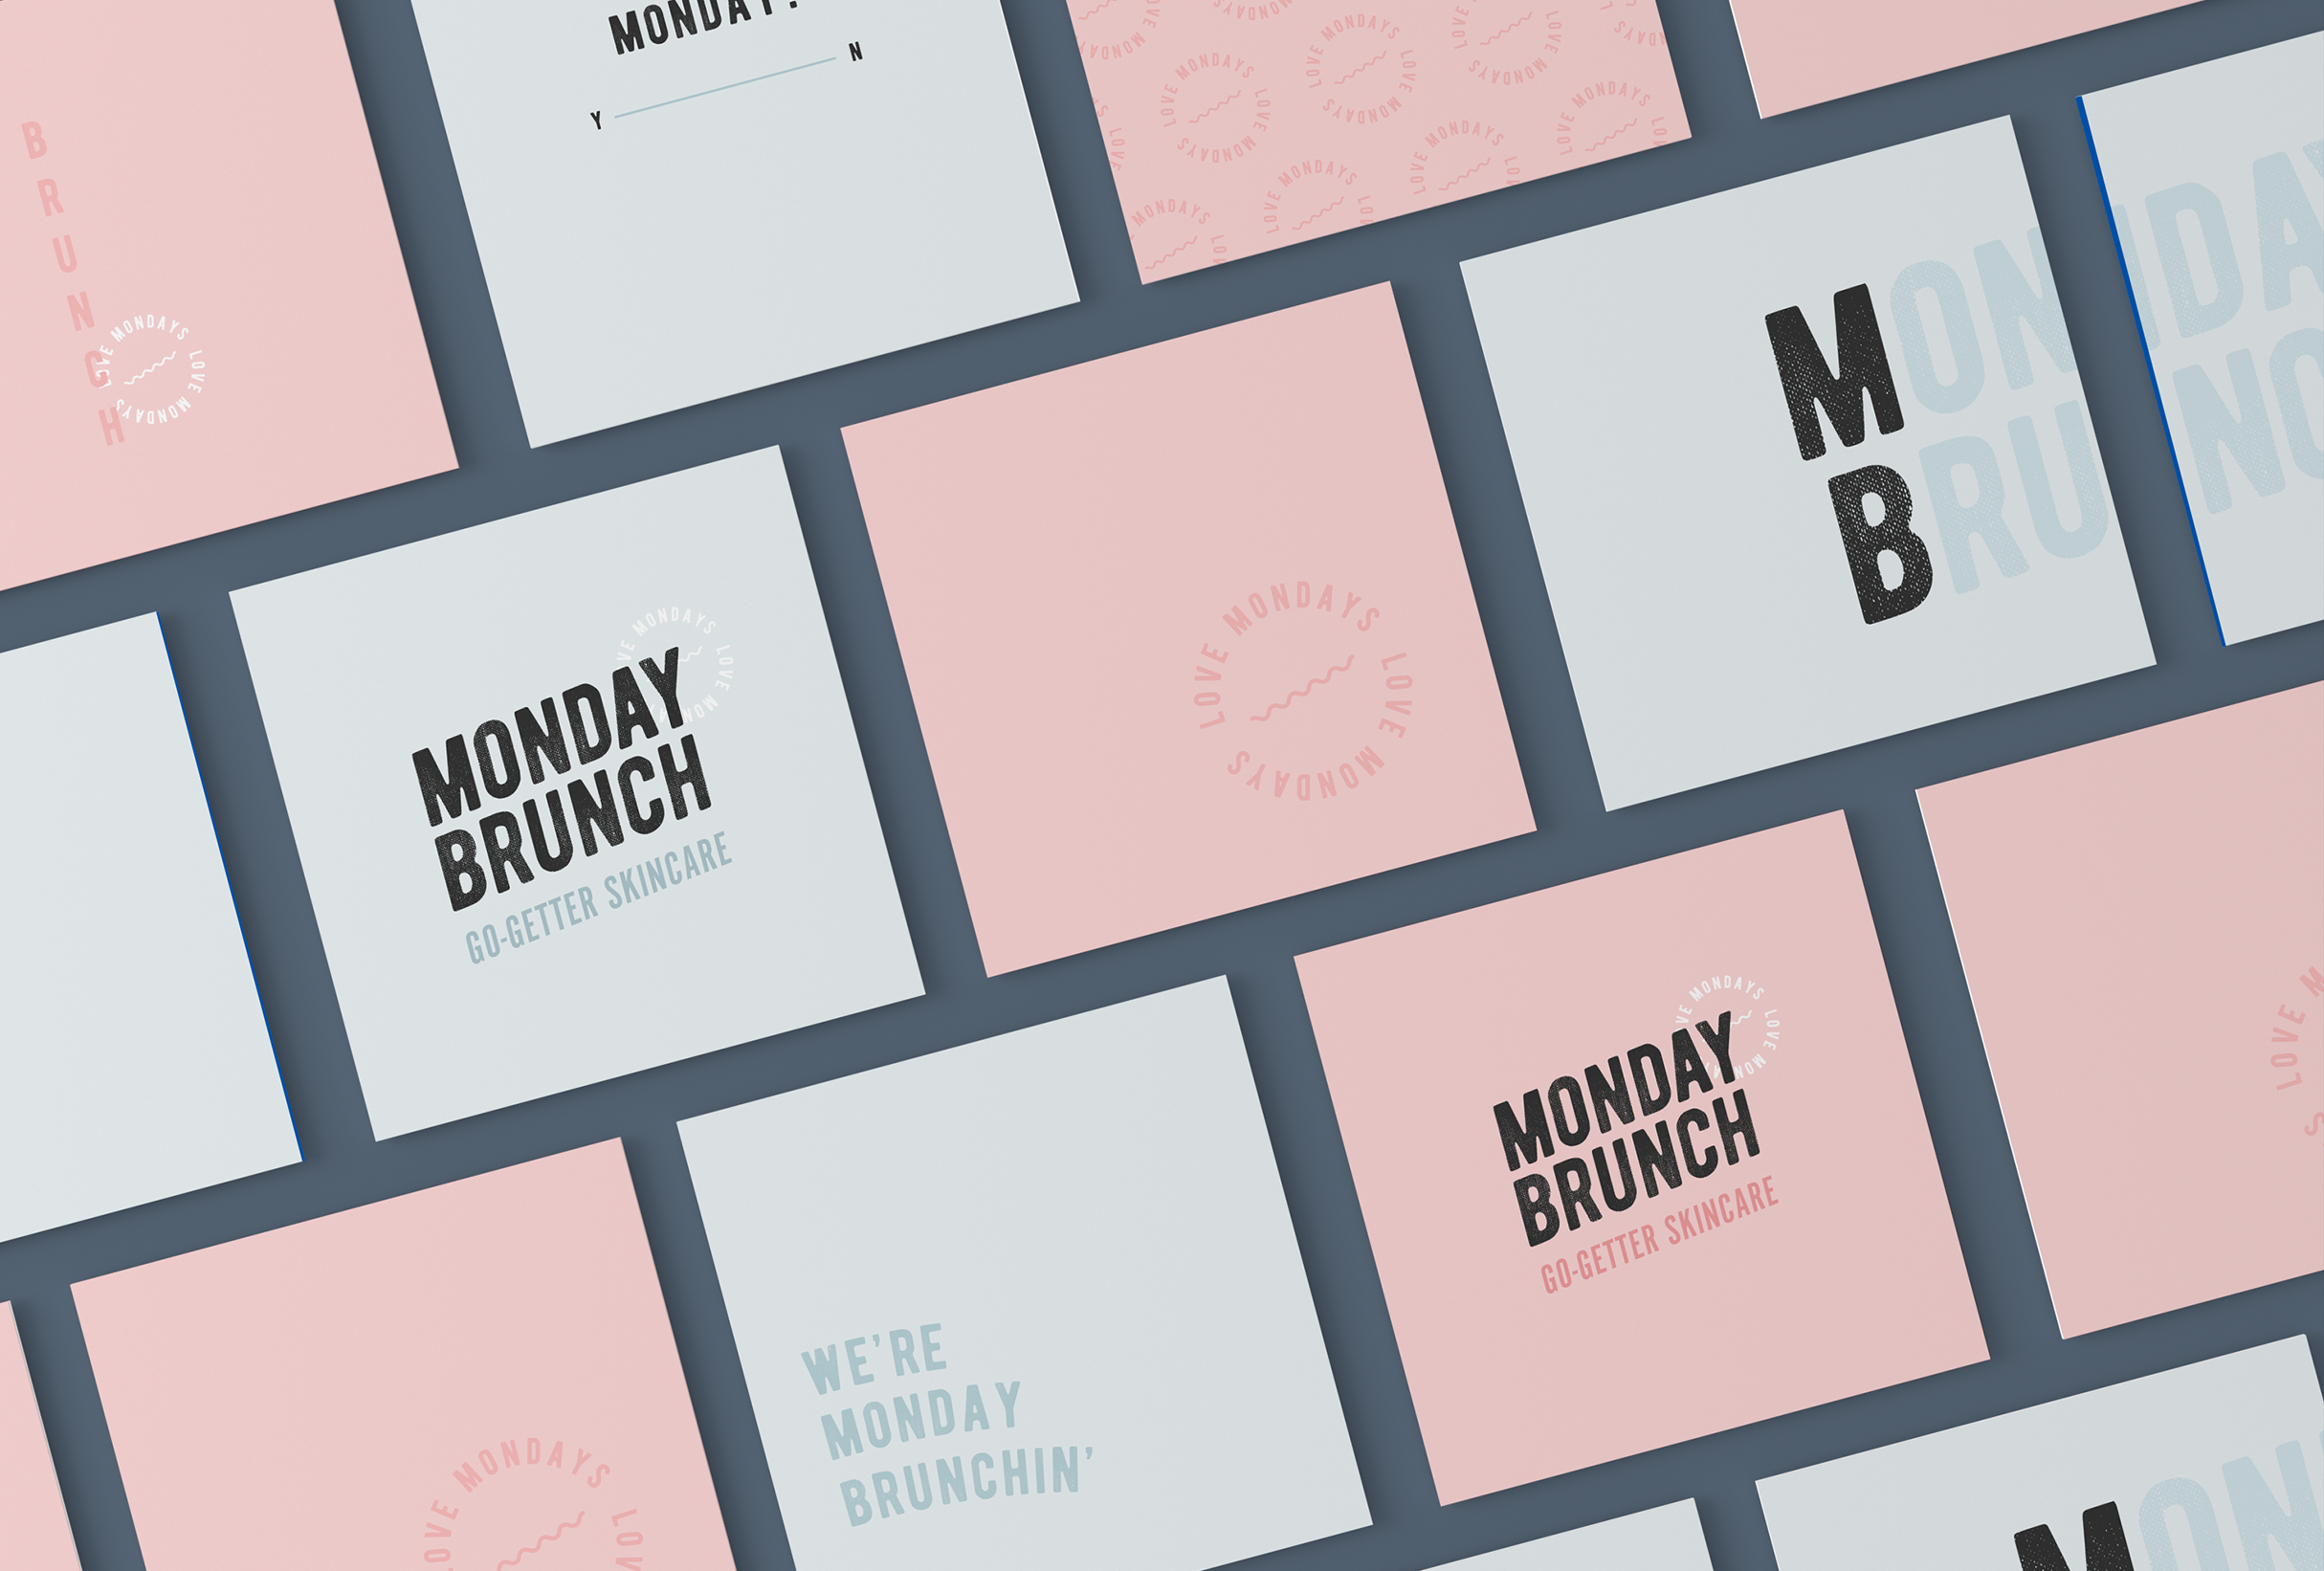 Business cards design for Monday Brunch, a skincare line that aims to bring high-quality products and positivity to it's customers, no matter what day of the week - designed by Wiltshire-based graphic designer, Kaye Huett